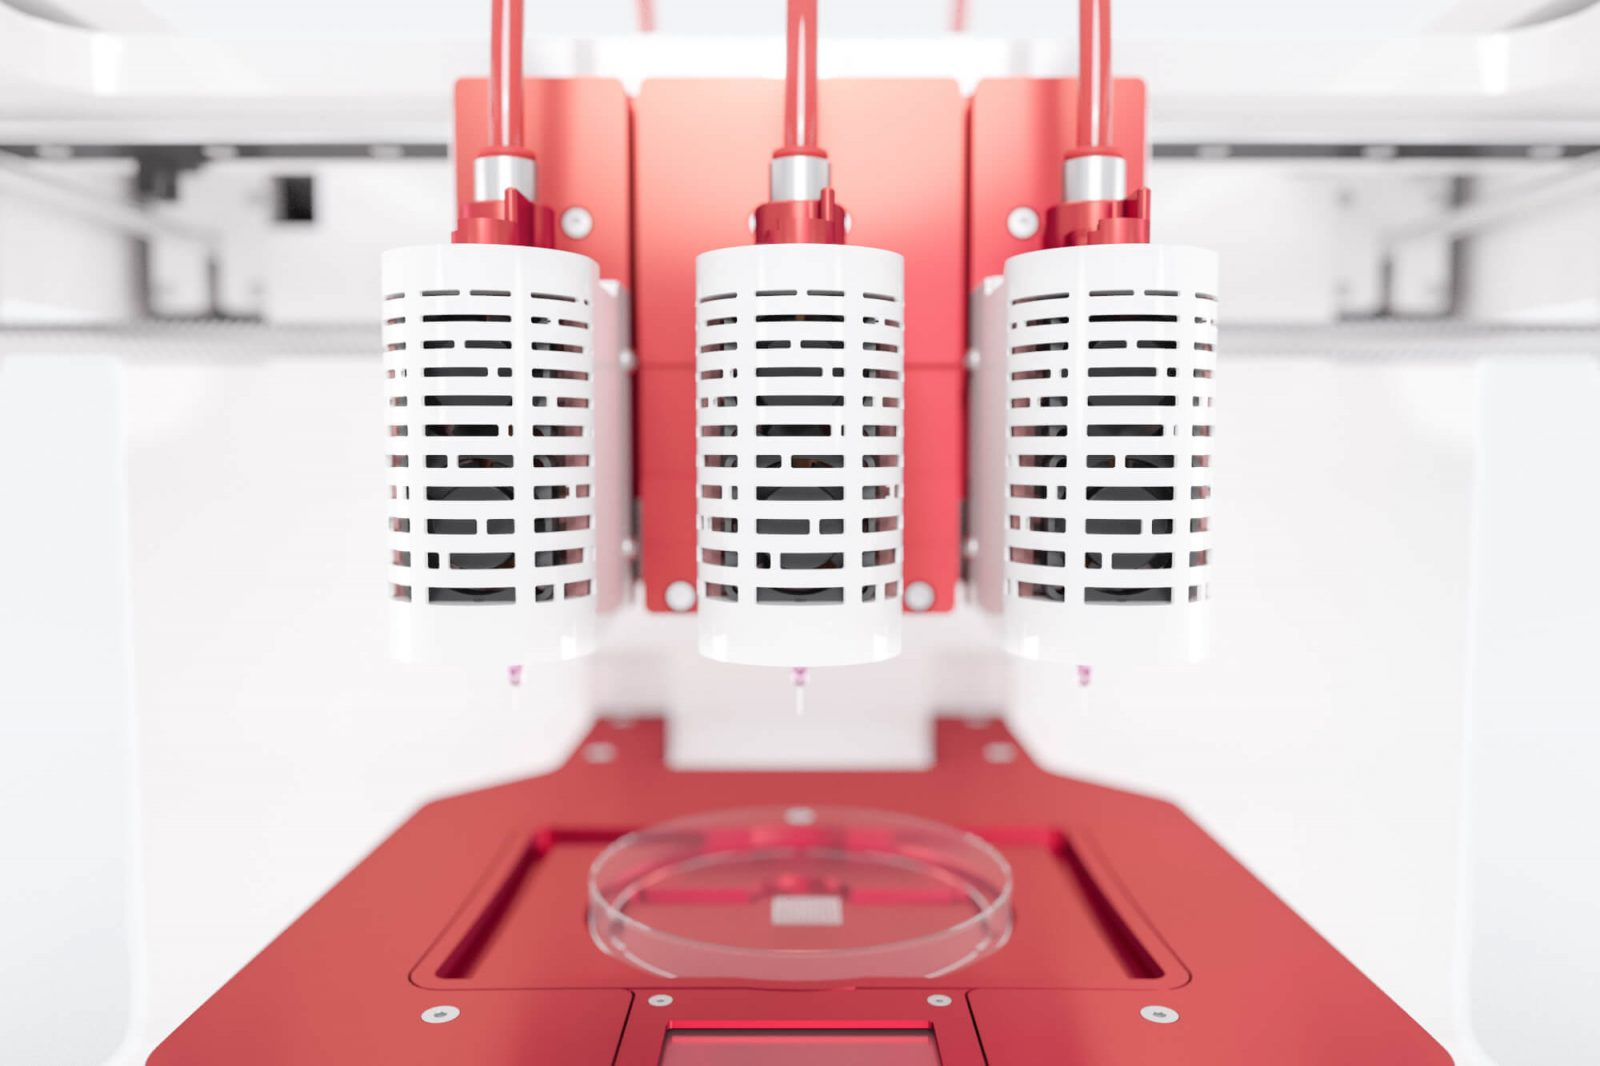 Resetting Autocalibration Height - Allevi 3 bioprinter extruders